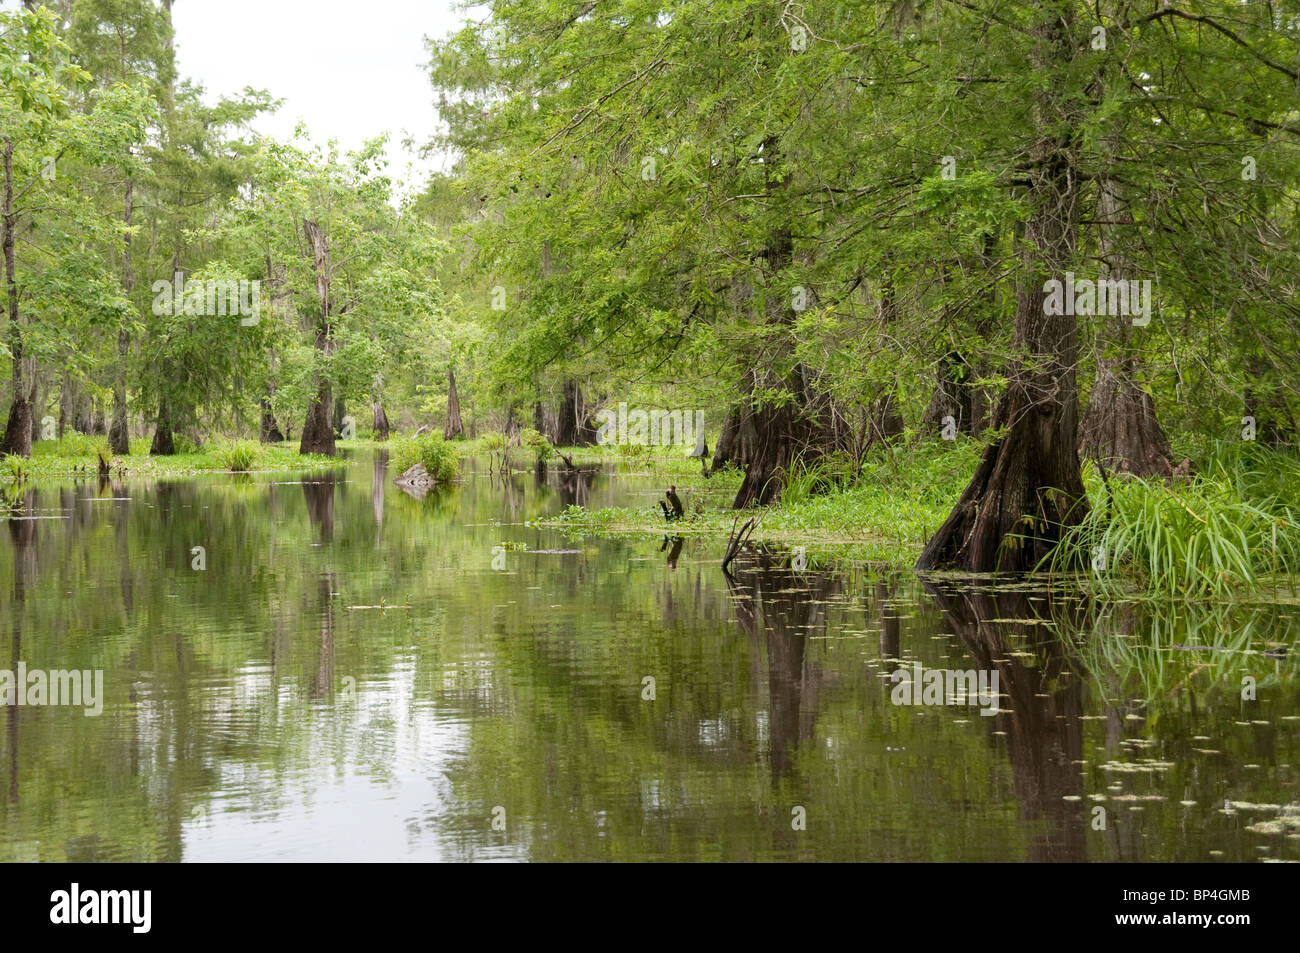 A wetland in the Lake Martin area of Louisiana, located on the western edge of the Atchafalaya swamp. - Stock Image